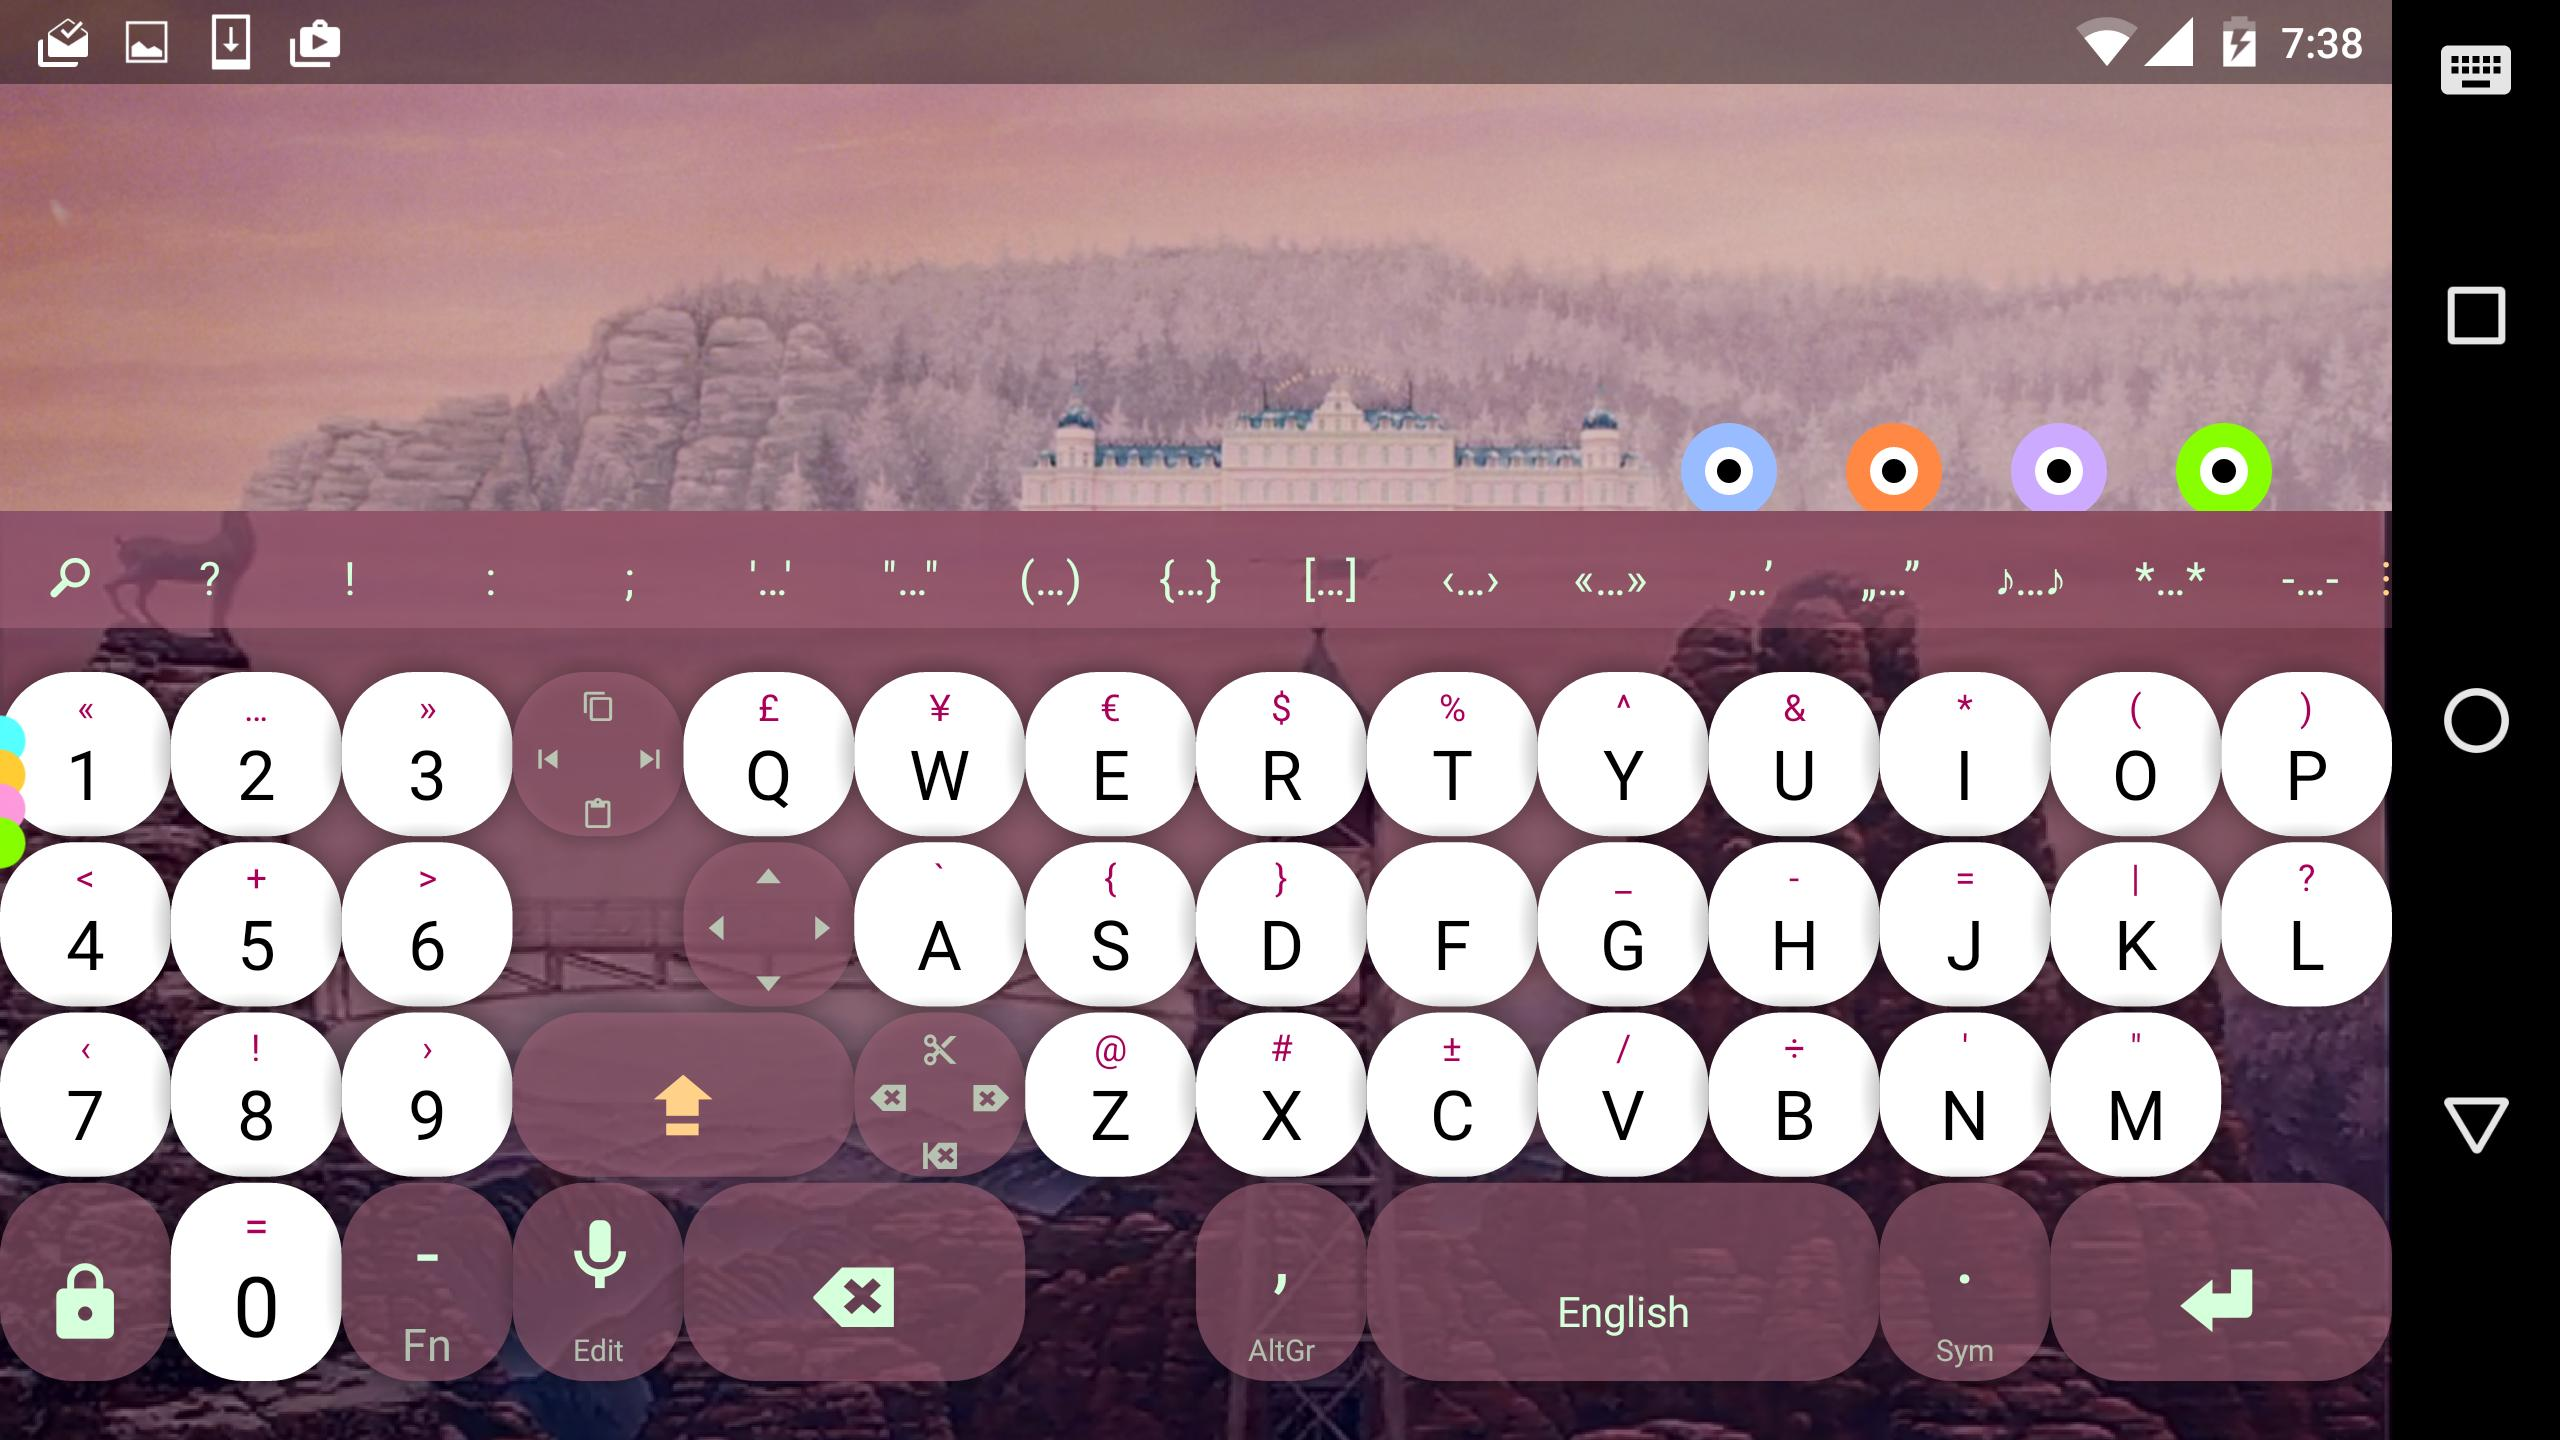 Multiling O Keyboard for Android - APK Download